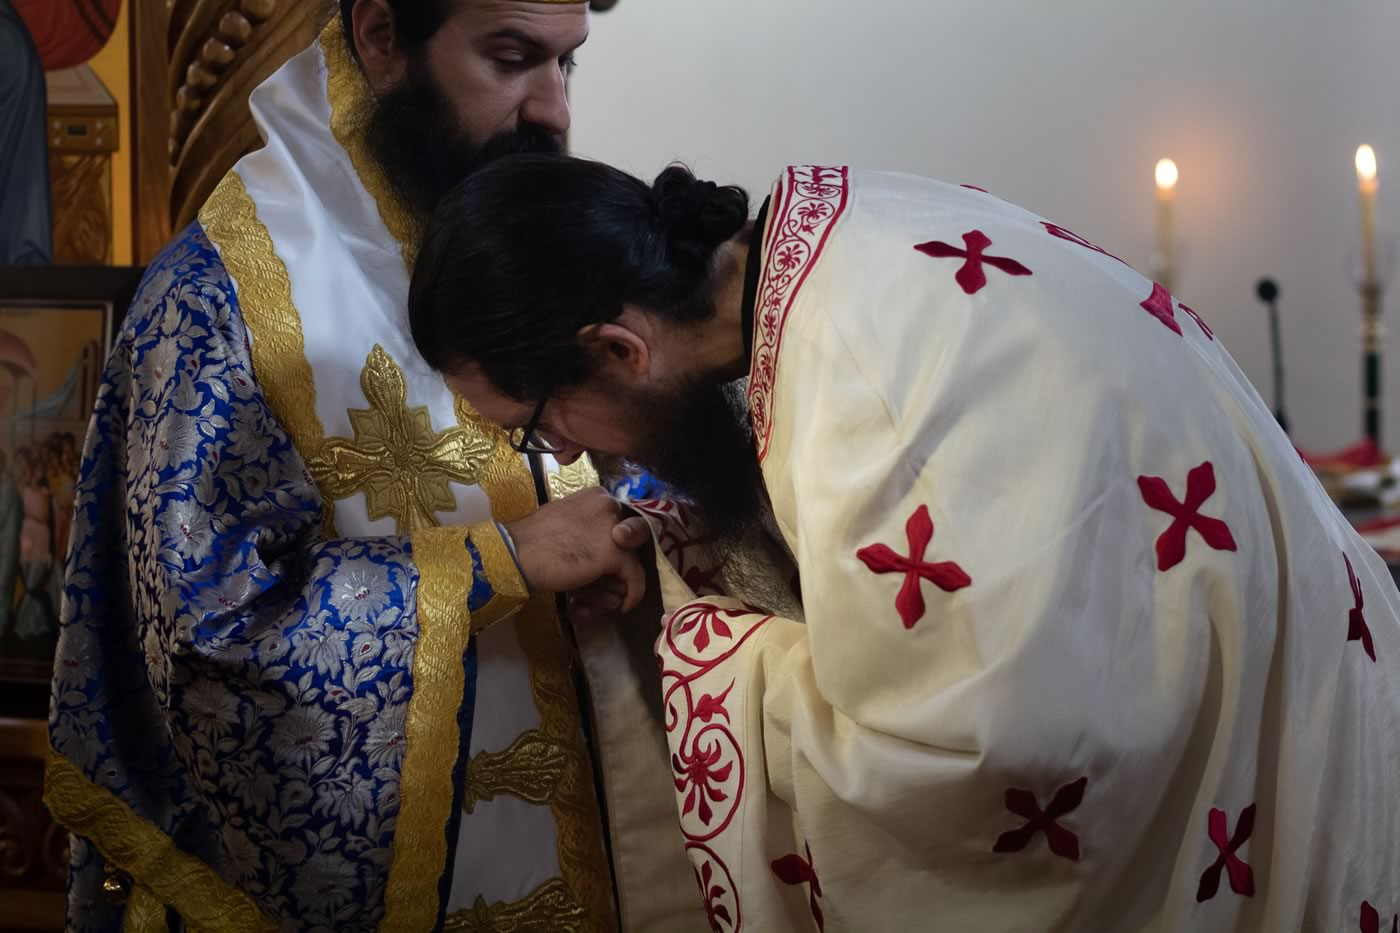 Ordination of Deacon Benedict to the Priesthood